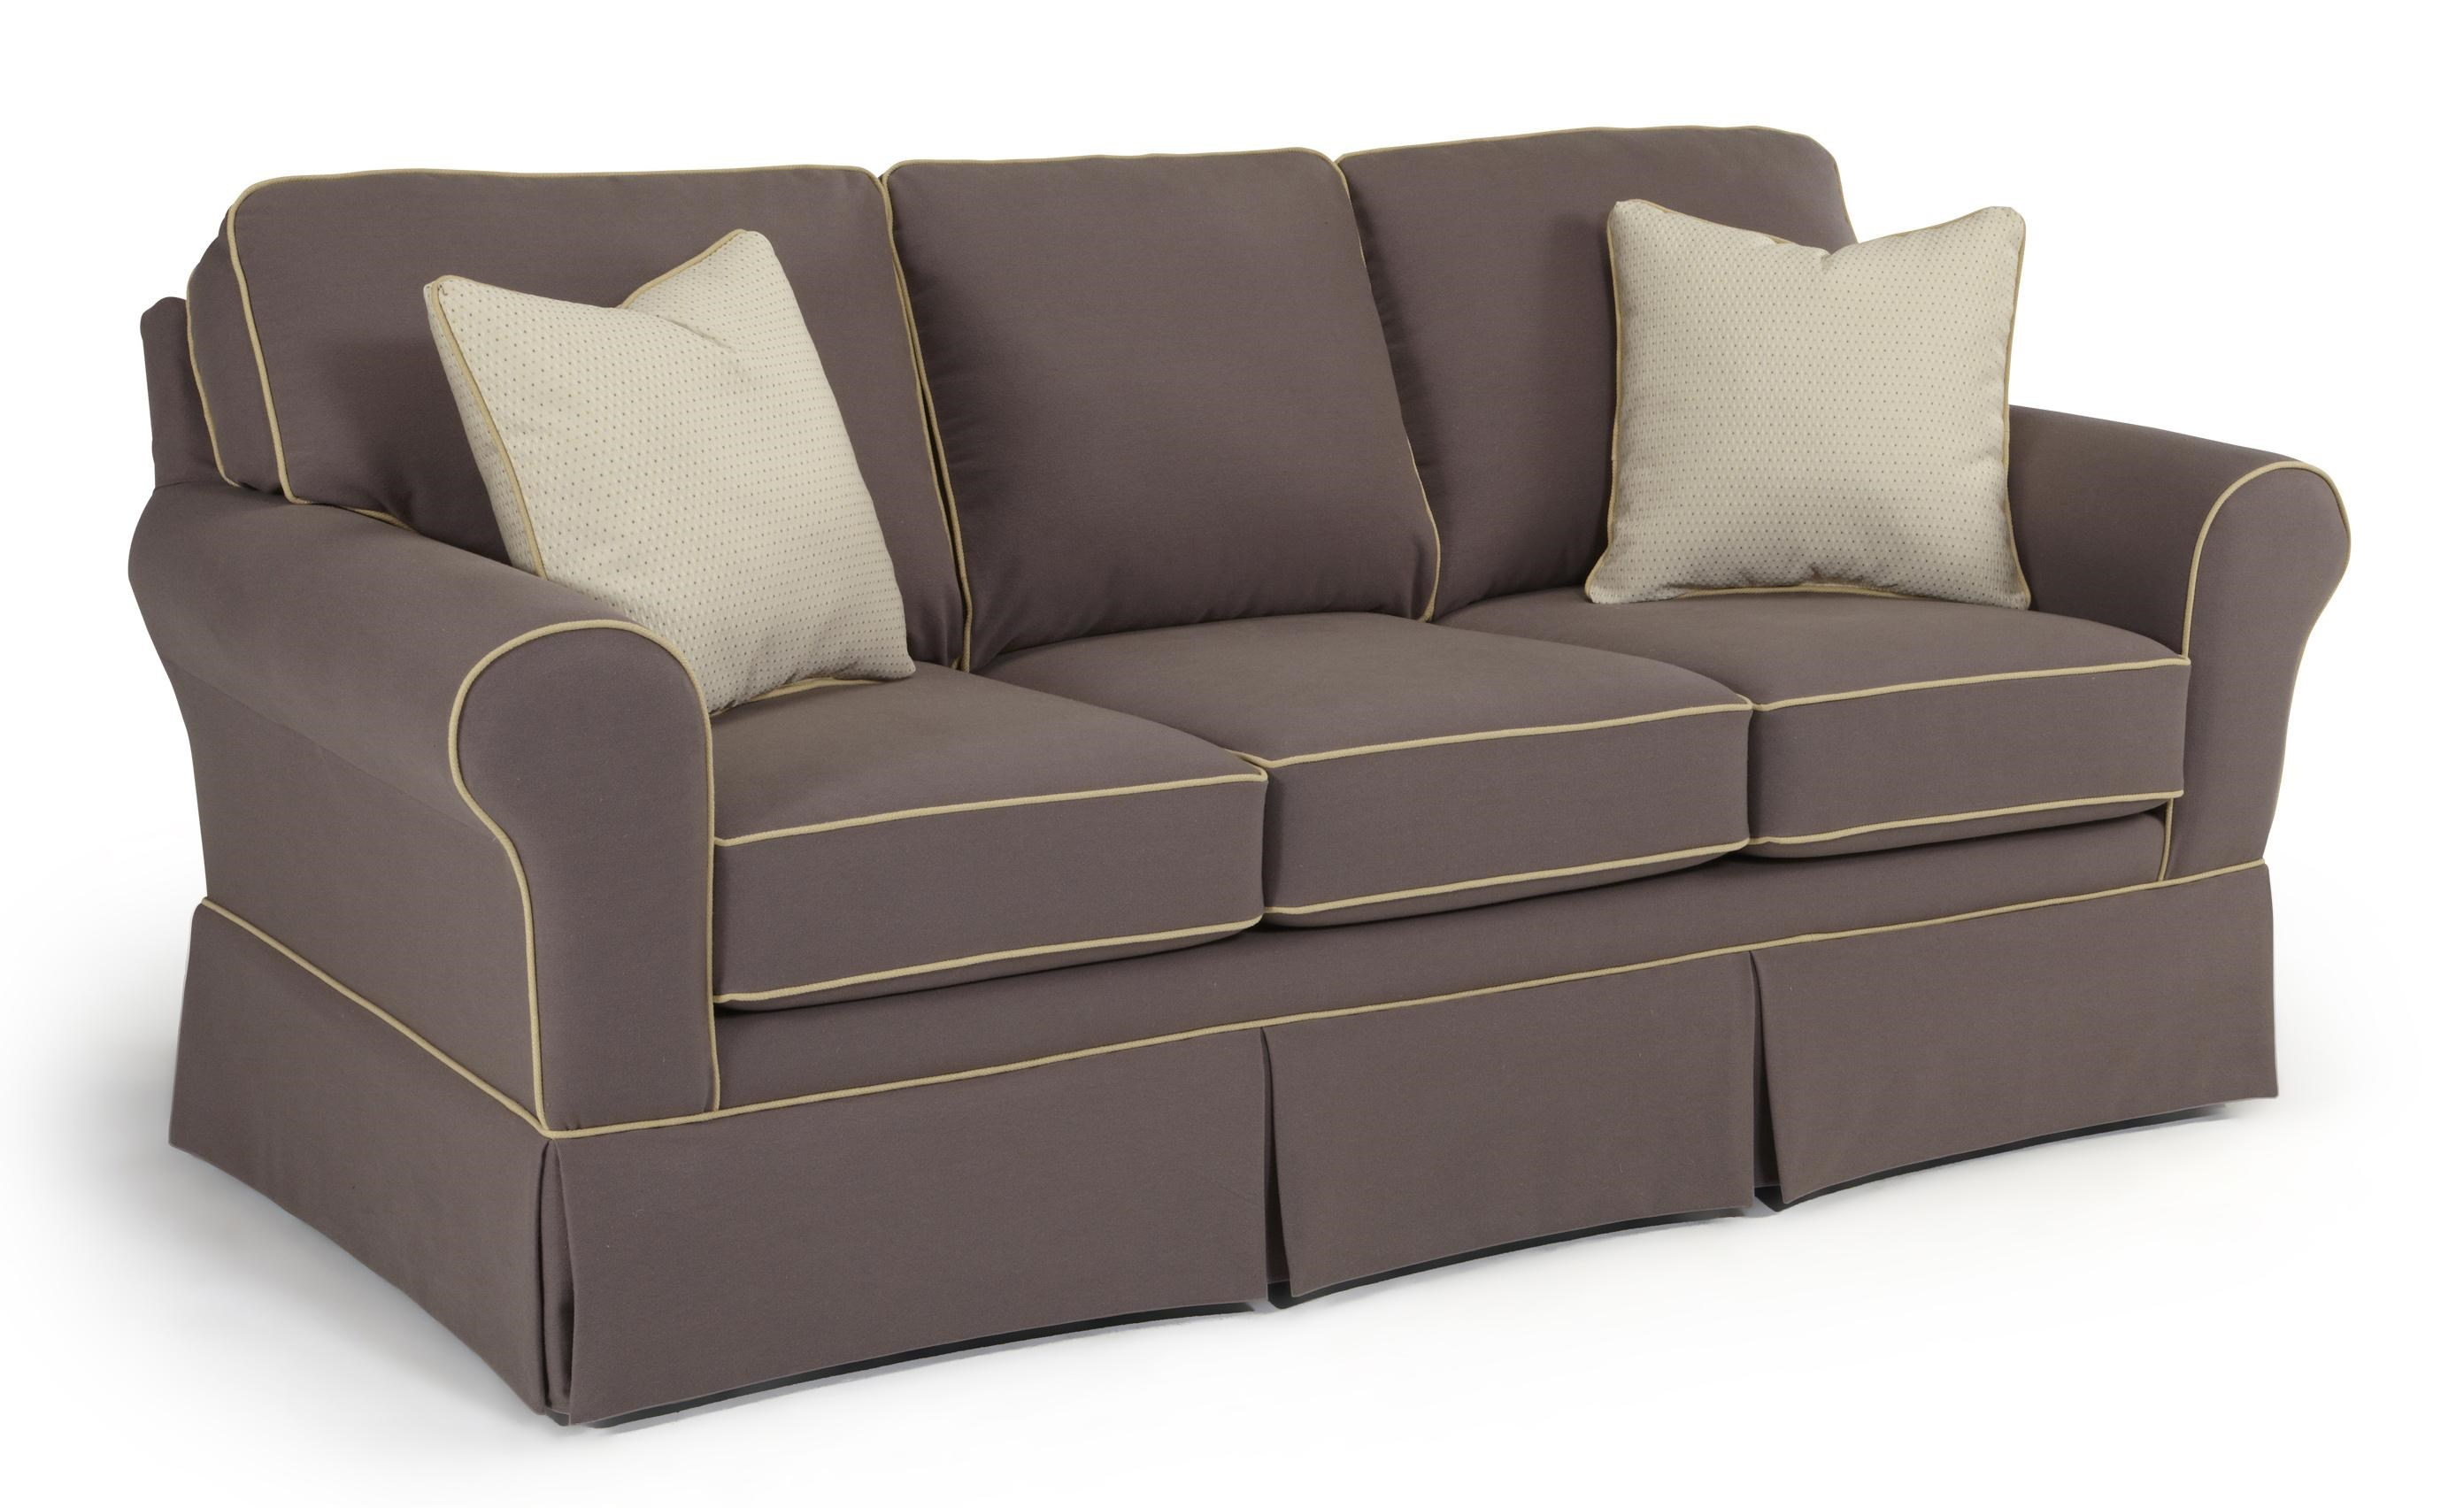 Best Home Furnishings Annabel U003cbu003eCustomizableu003c/bu003e Traditional Sofa With  Rolled